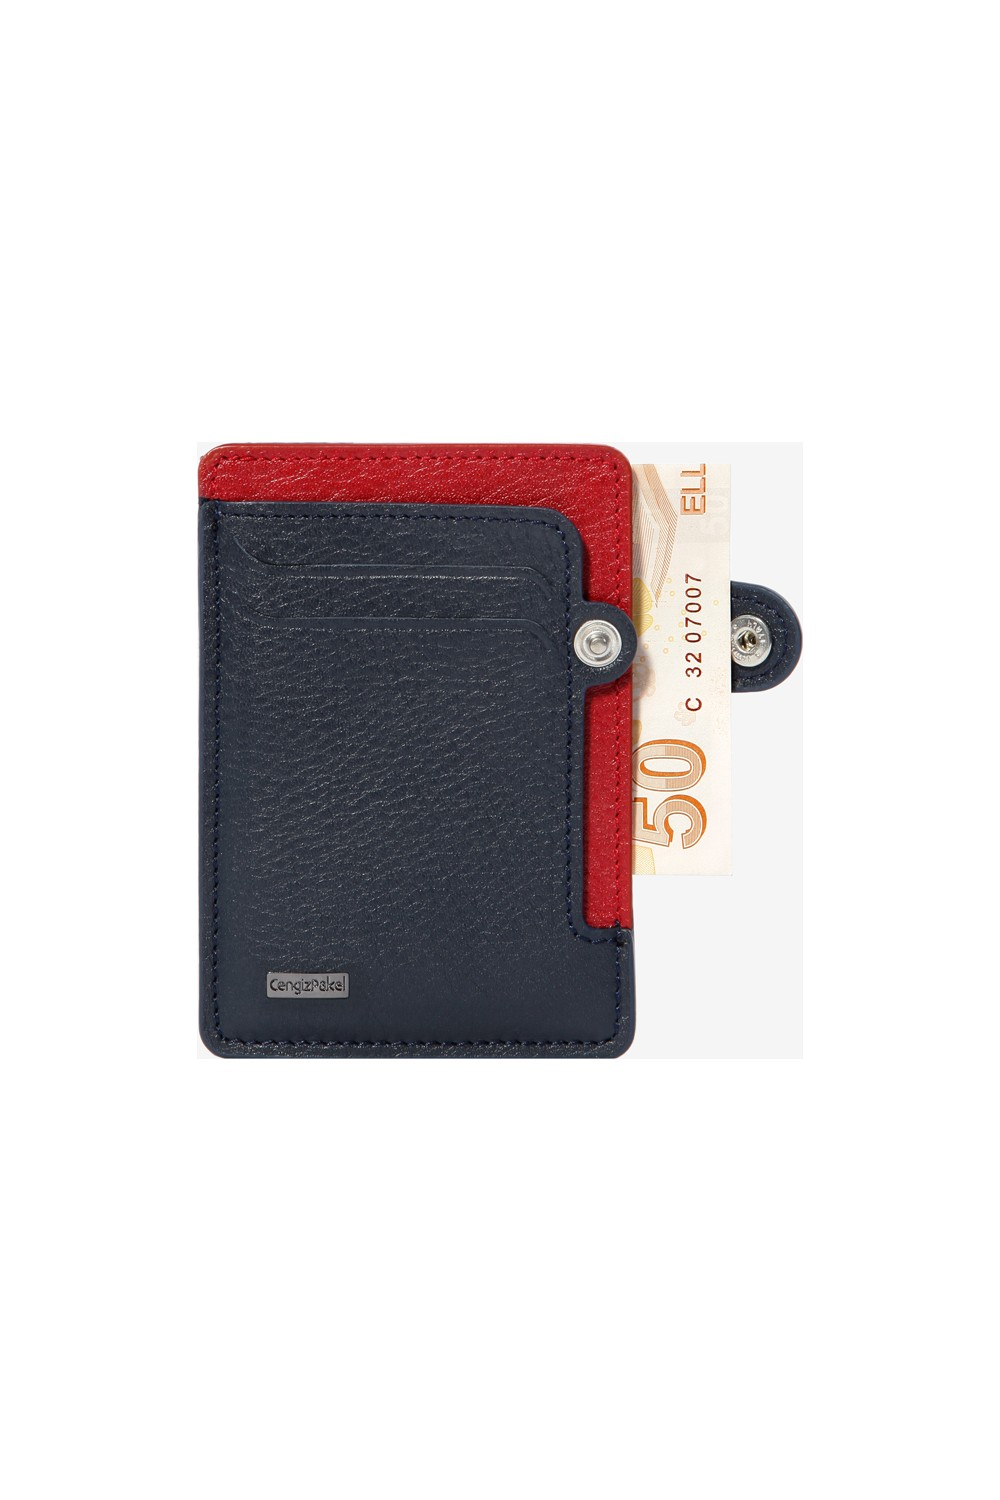 Cengiz Pakel Leather Wallet